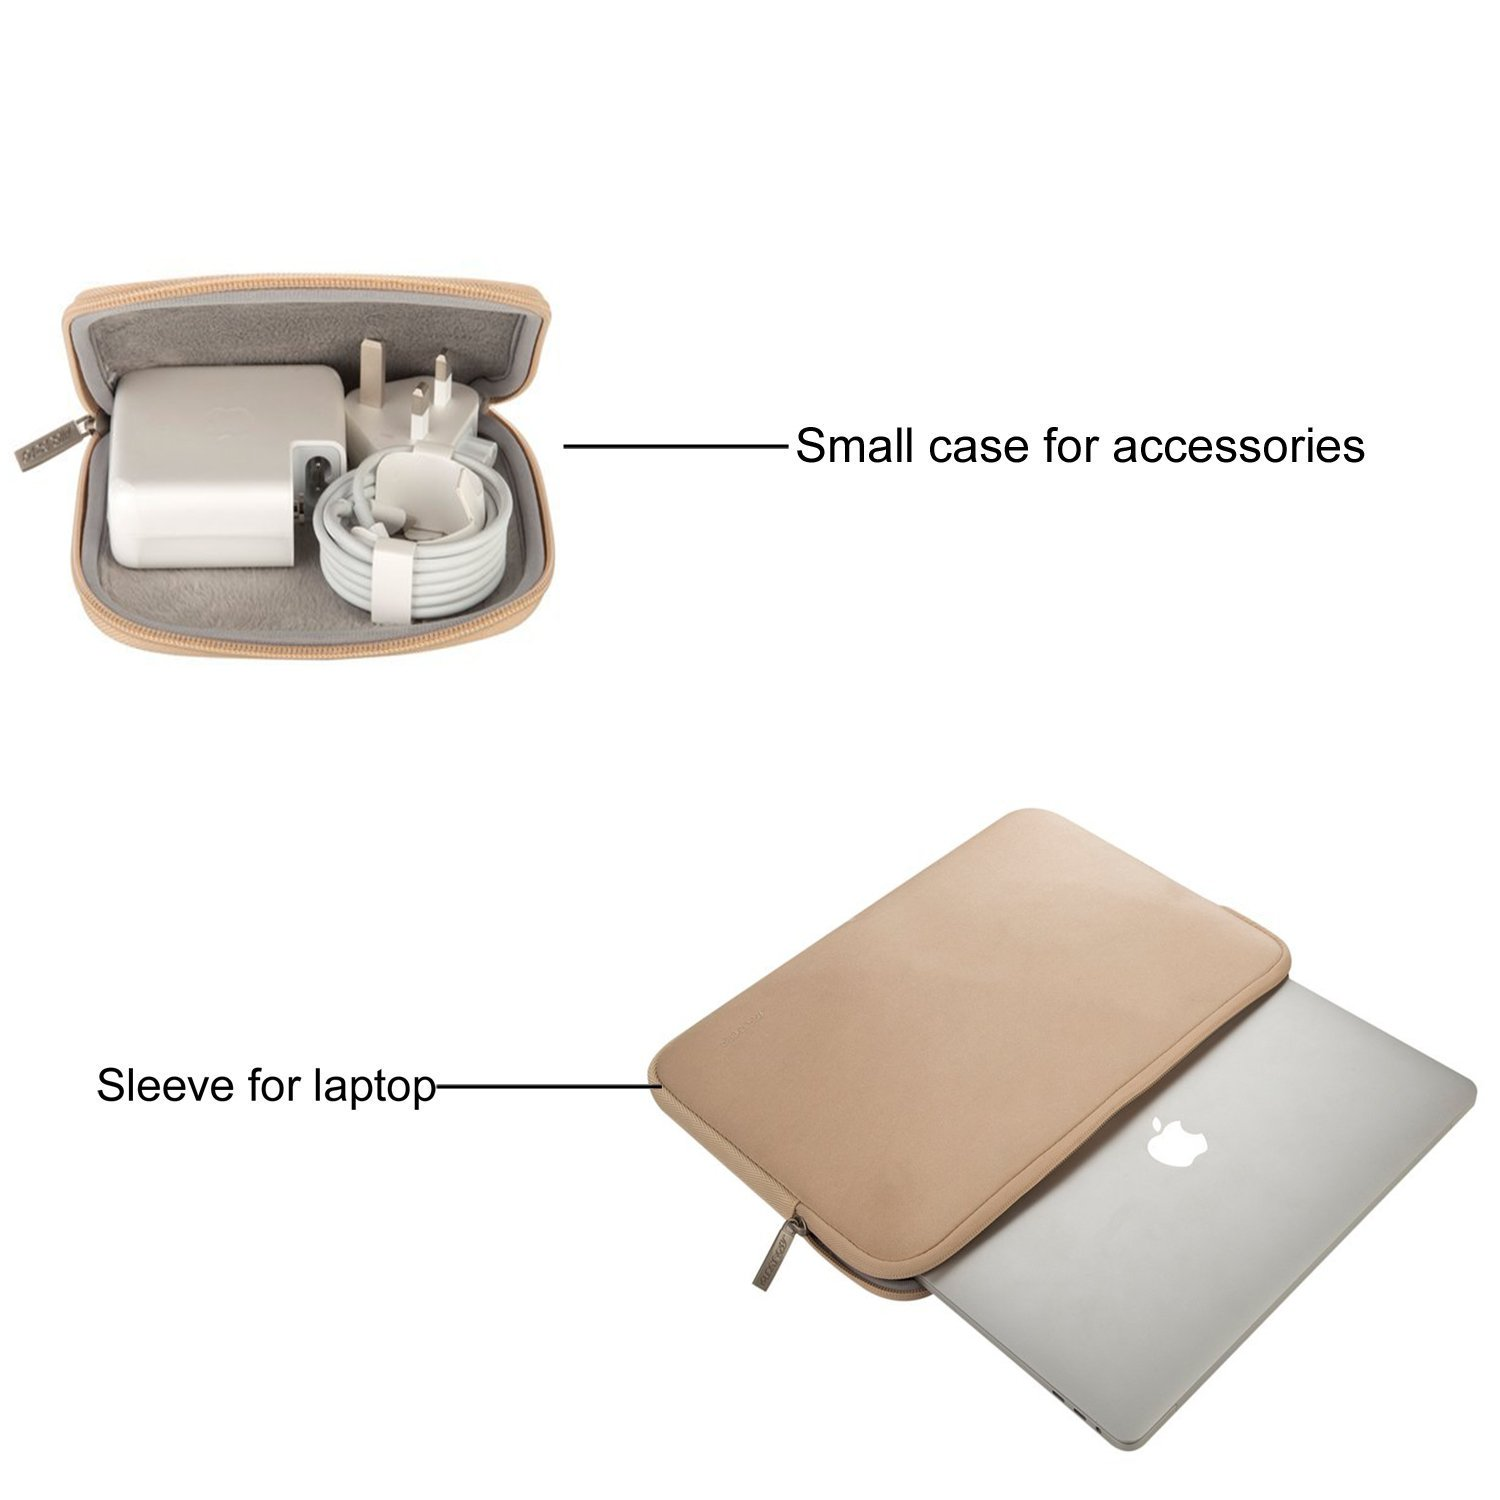 MOSISO Water Repellent Neoprene Sleeve Bag Cover Compatible 13-13.3 Inch Laptop with Small Case Living Coral